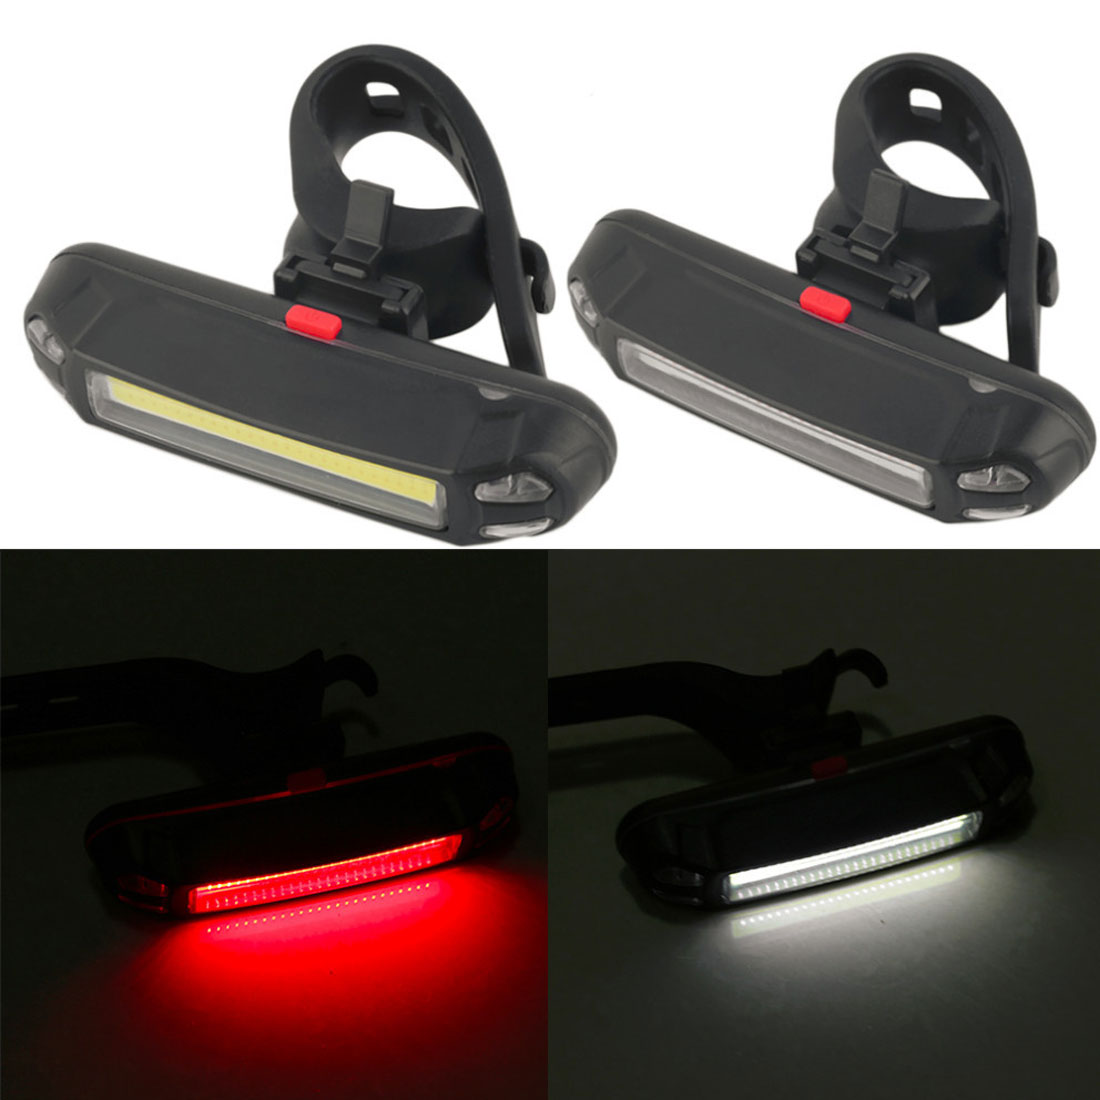 Hot 100 Lumens Rechargeable COB LED USB Mountain Bike Tail Light Taillight Safety Warning Bicycle Rear Light Bicycle Lamp New